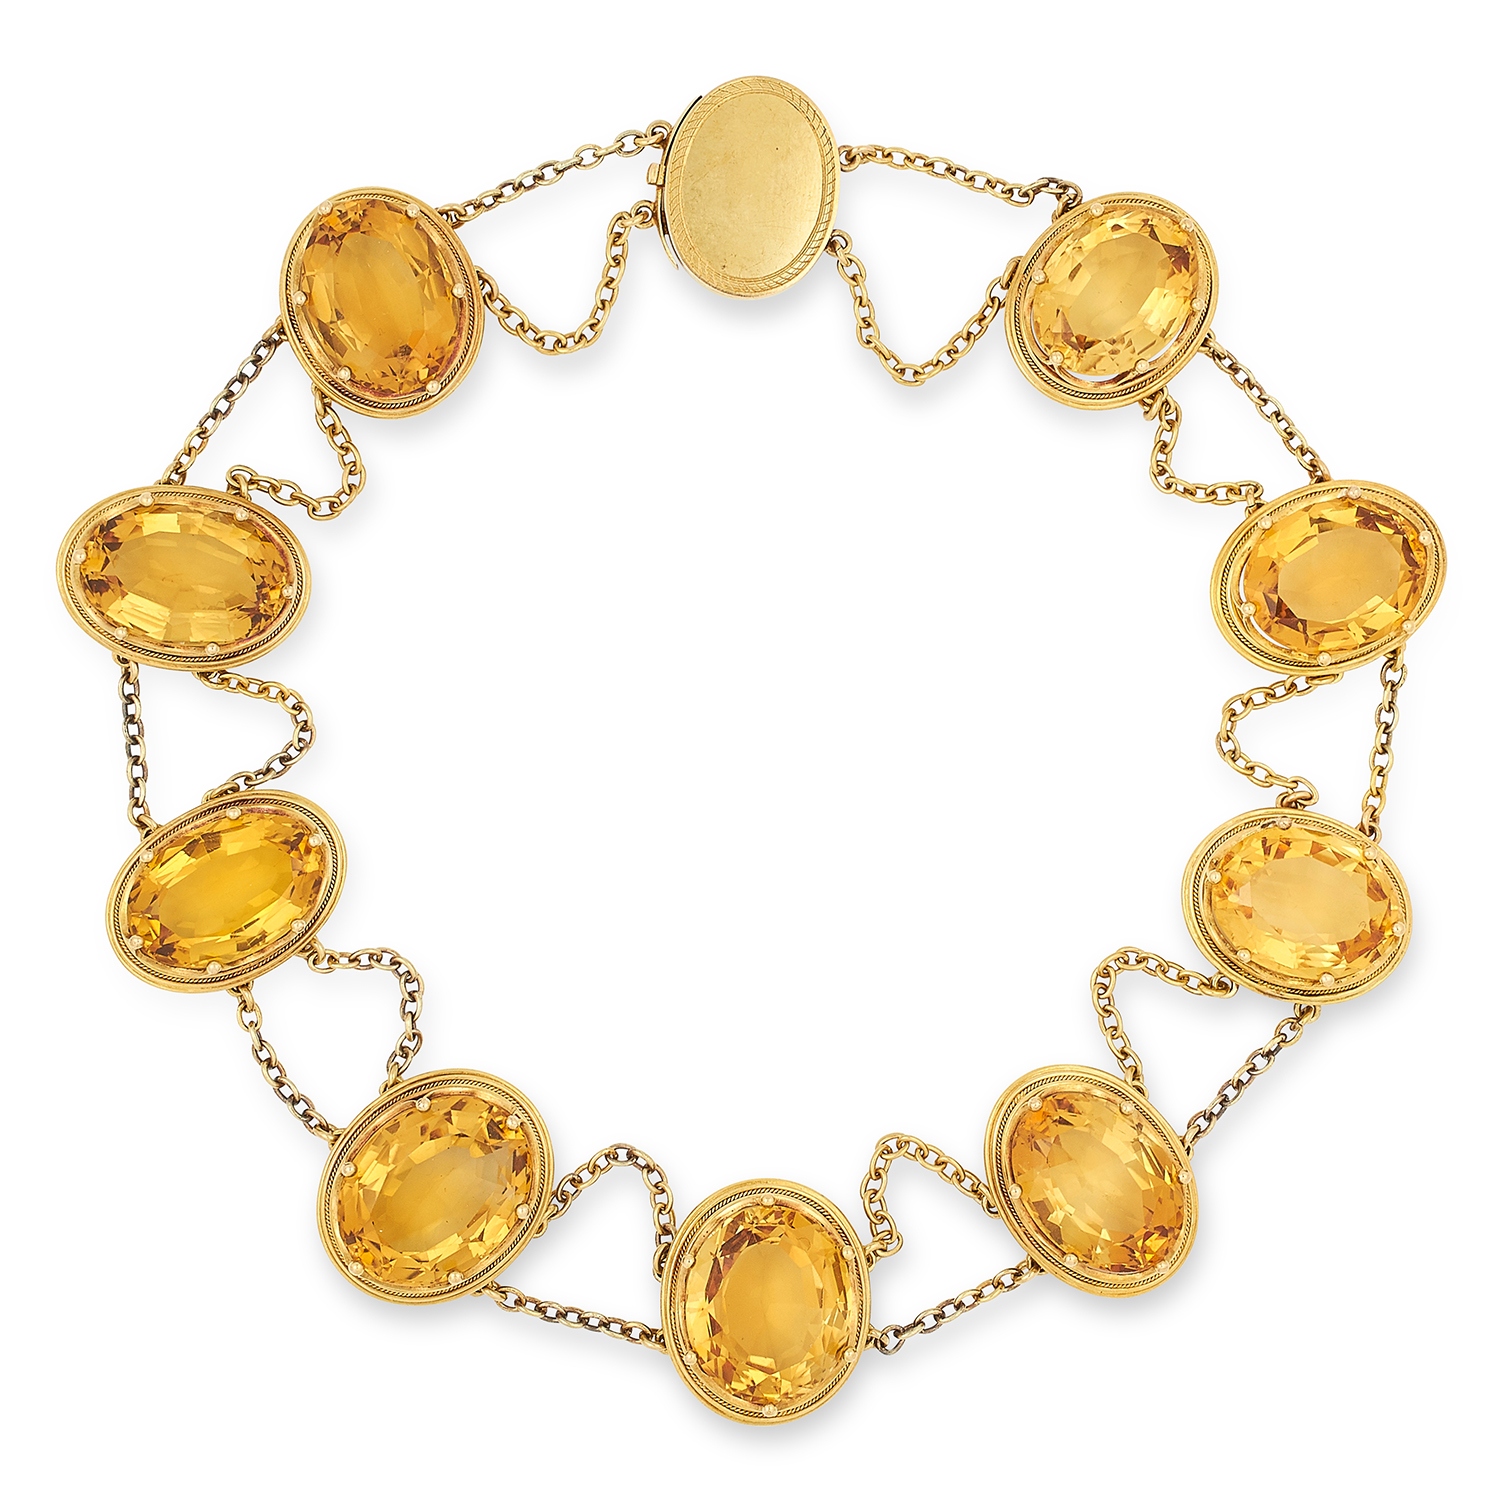 Los 4 - ANTIQUE CITRINE NECKLACE set with nine oval cut citrines suspending belcher link chain swags, 37.